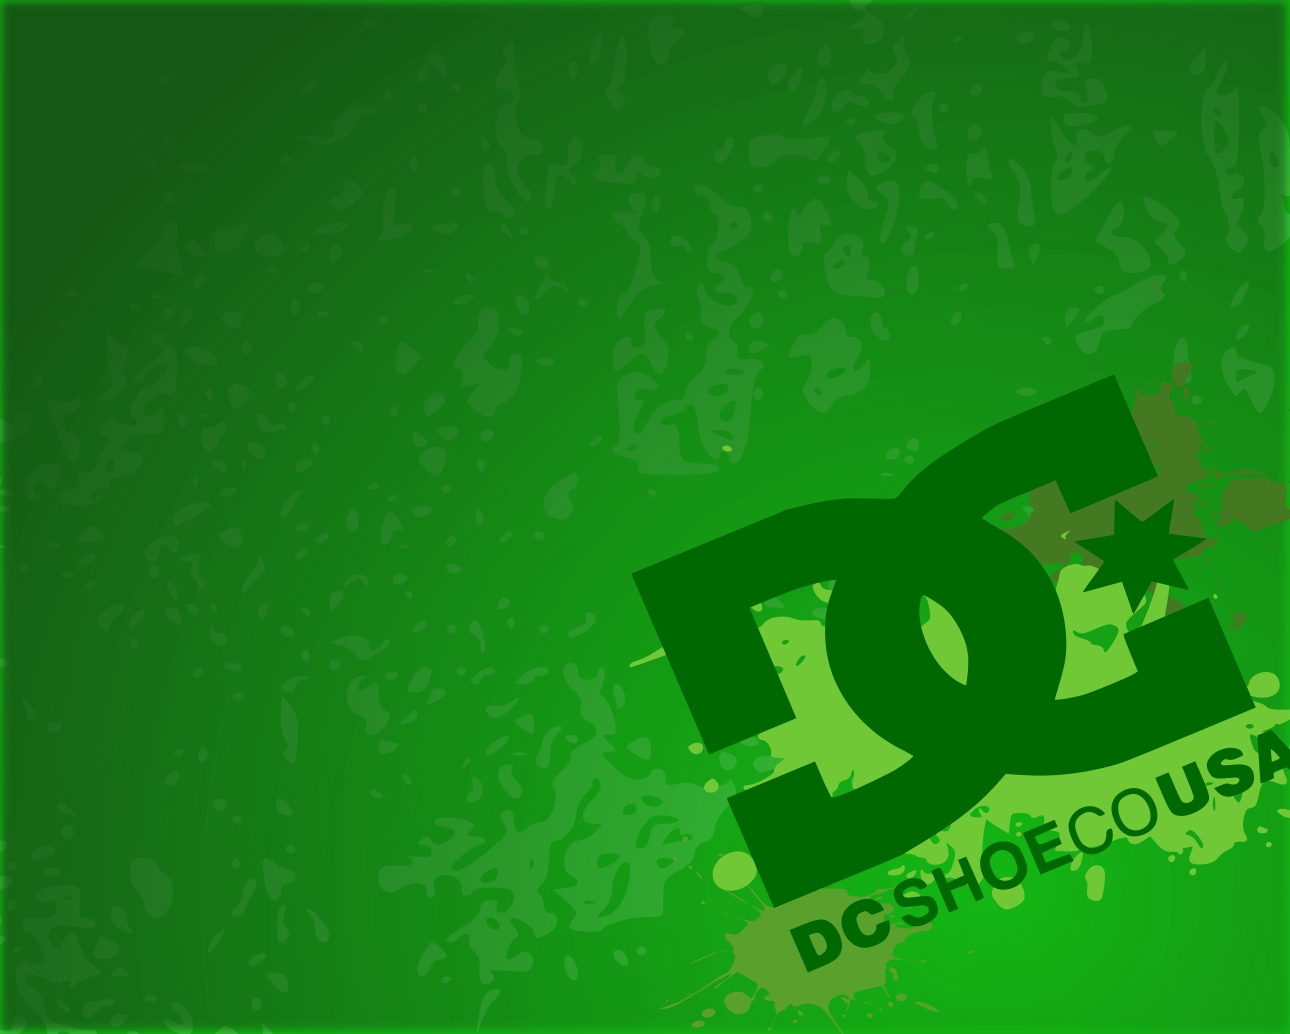 DC Shoes camo Wallpaper by bmgreatness on DeviantArt